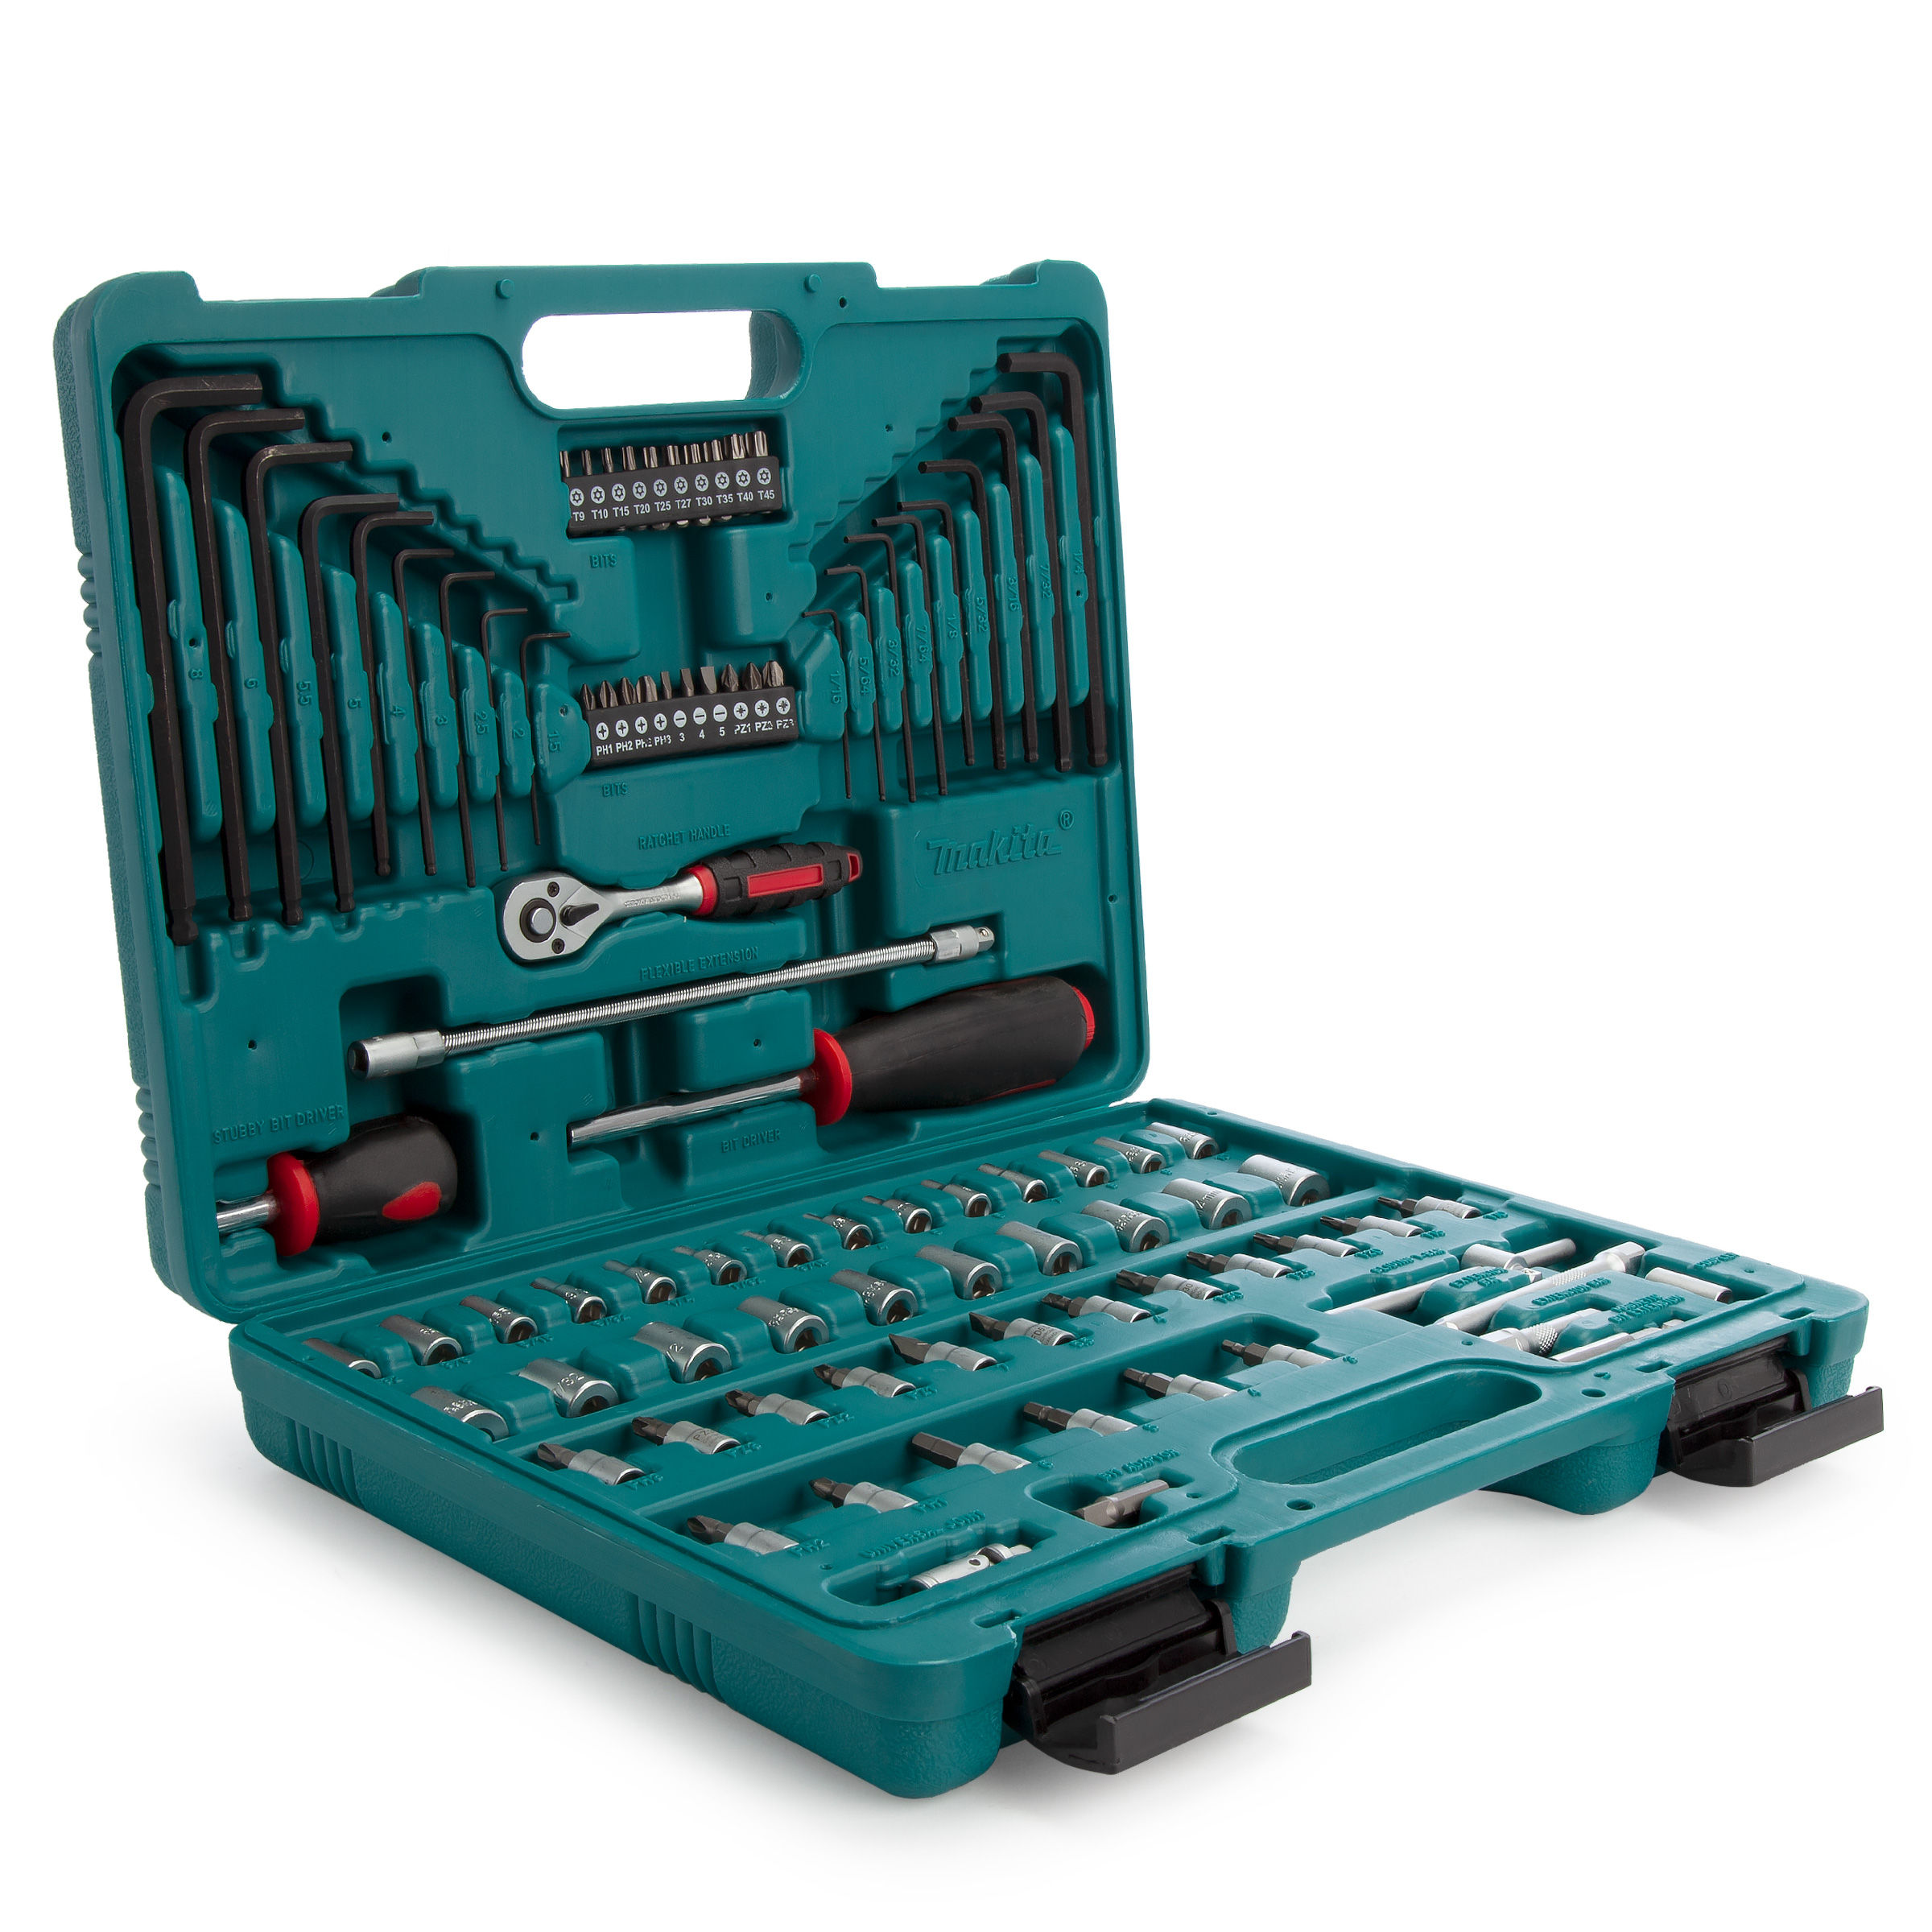 Makita Tool Kit, Service Engineer, Assorted Tools & Accessories, 91 Pieces P-46470